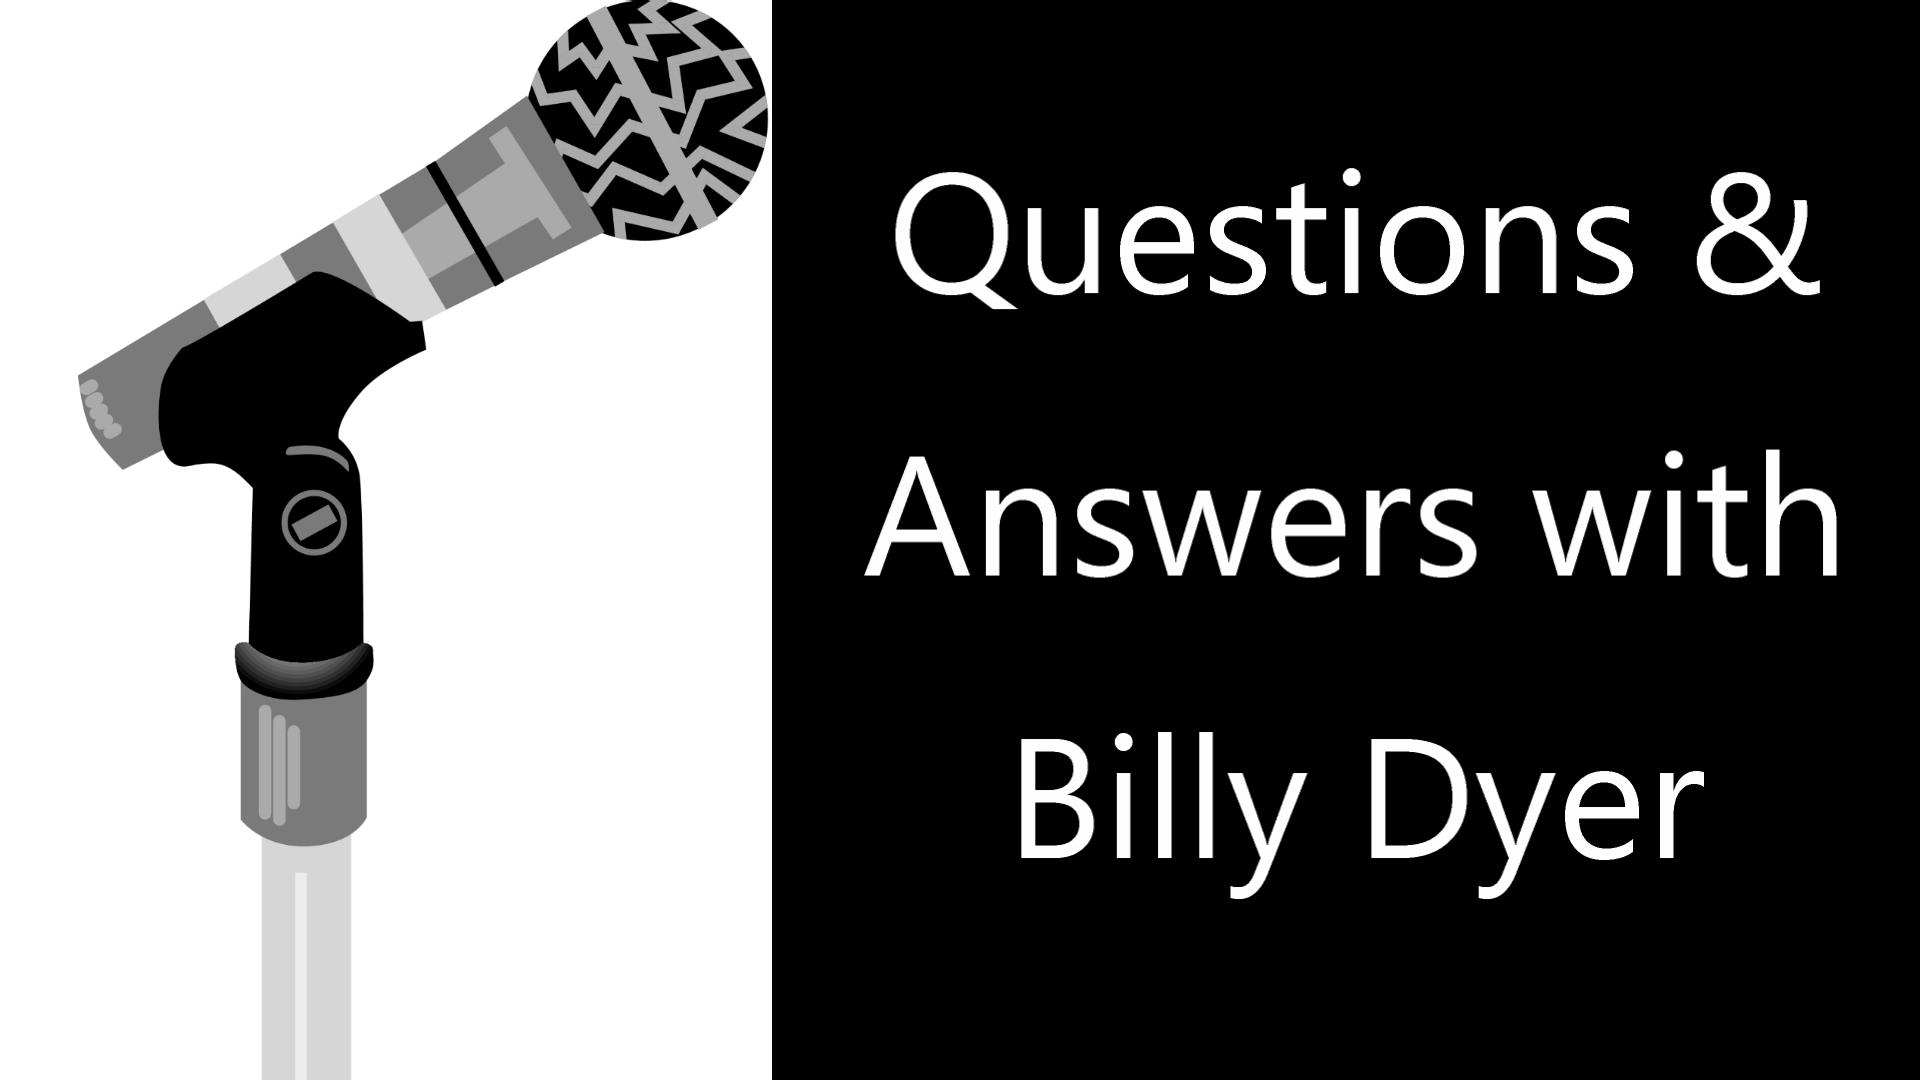 Questions & Answers With Billy Dyer